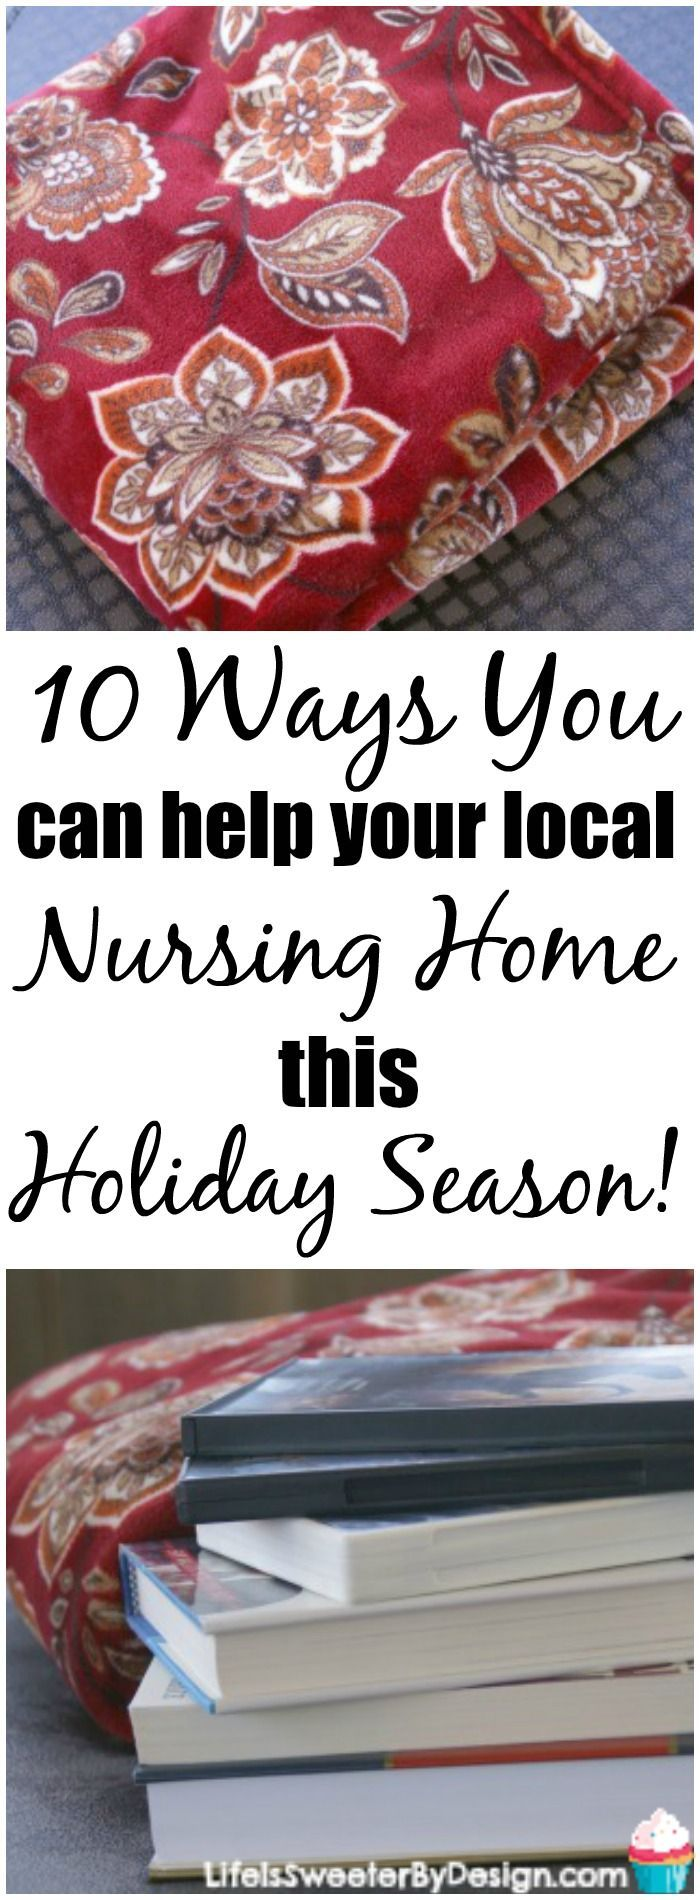 Here are 10 Ways to Help Your Local Nursing Home This Holiday Season. It is easy to give back and help others and you can even get your children involved in giving! #MembersMarkCares #ad @Sam'sClub